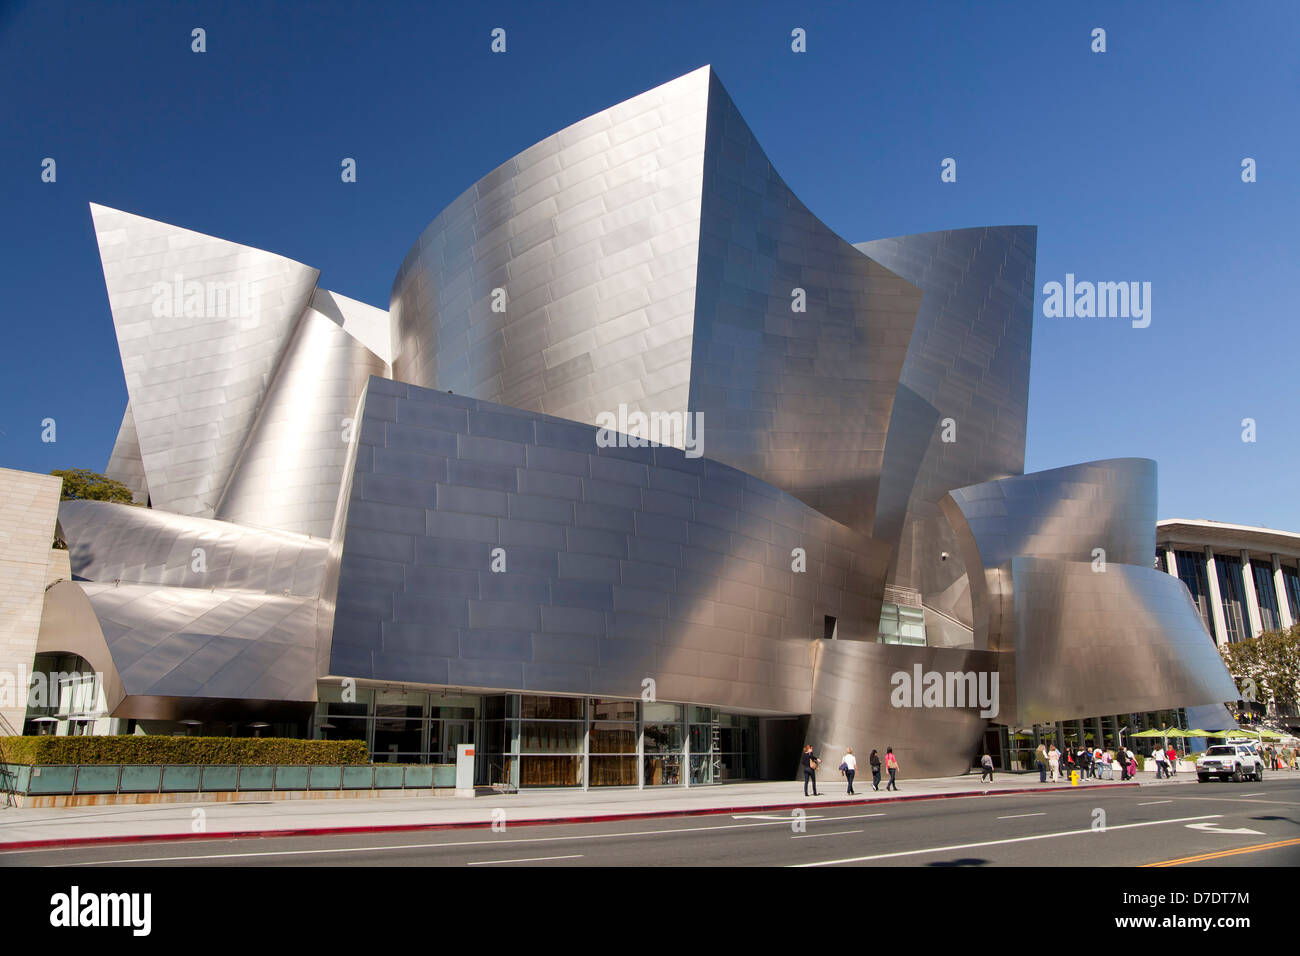 Modern Architecture Los Angeles modern architecture by frank gehry, walt disney concert hall